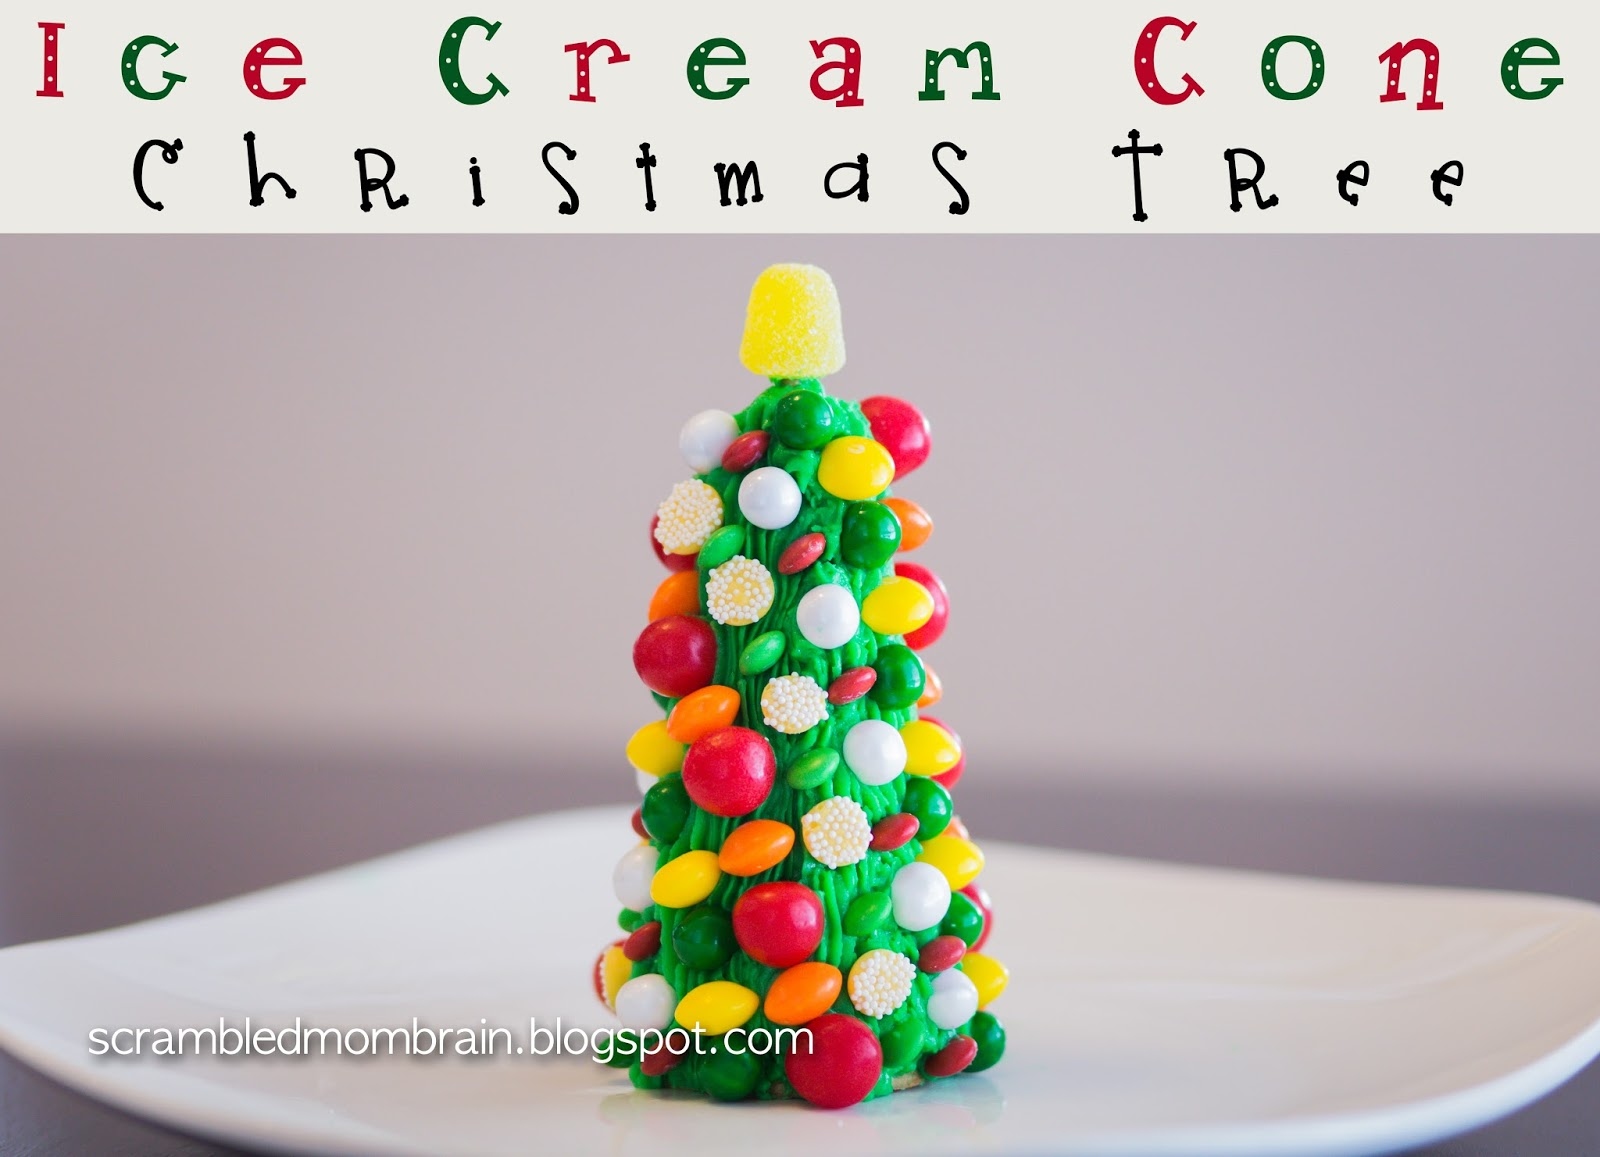 Scrambled Mom Brain: Decorating Ice Cream Cone Christmas Trees